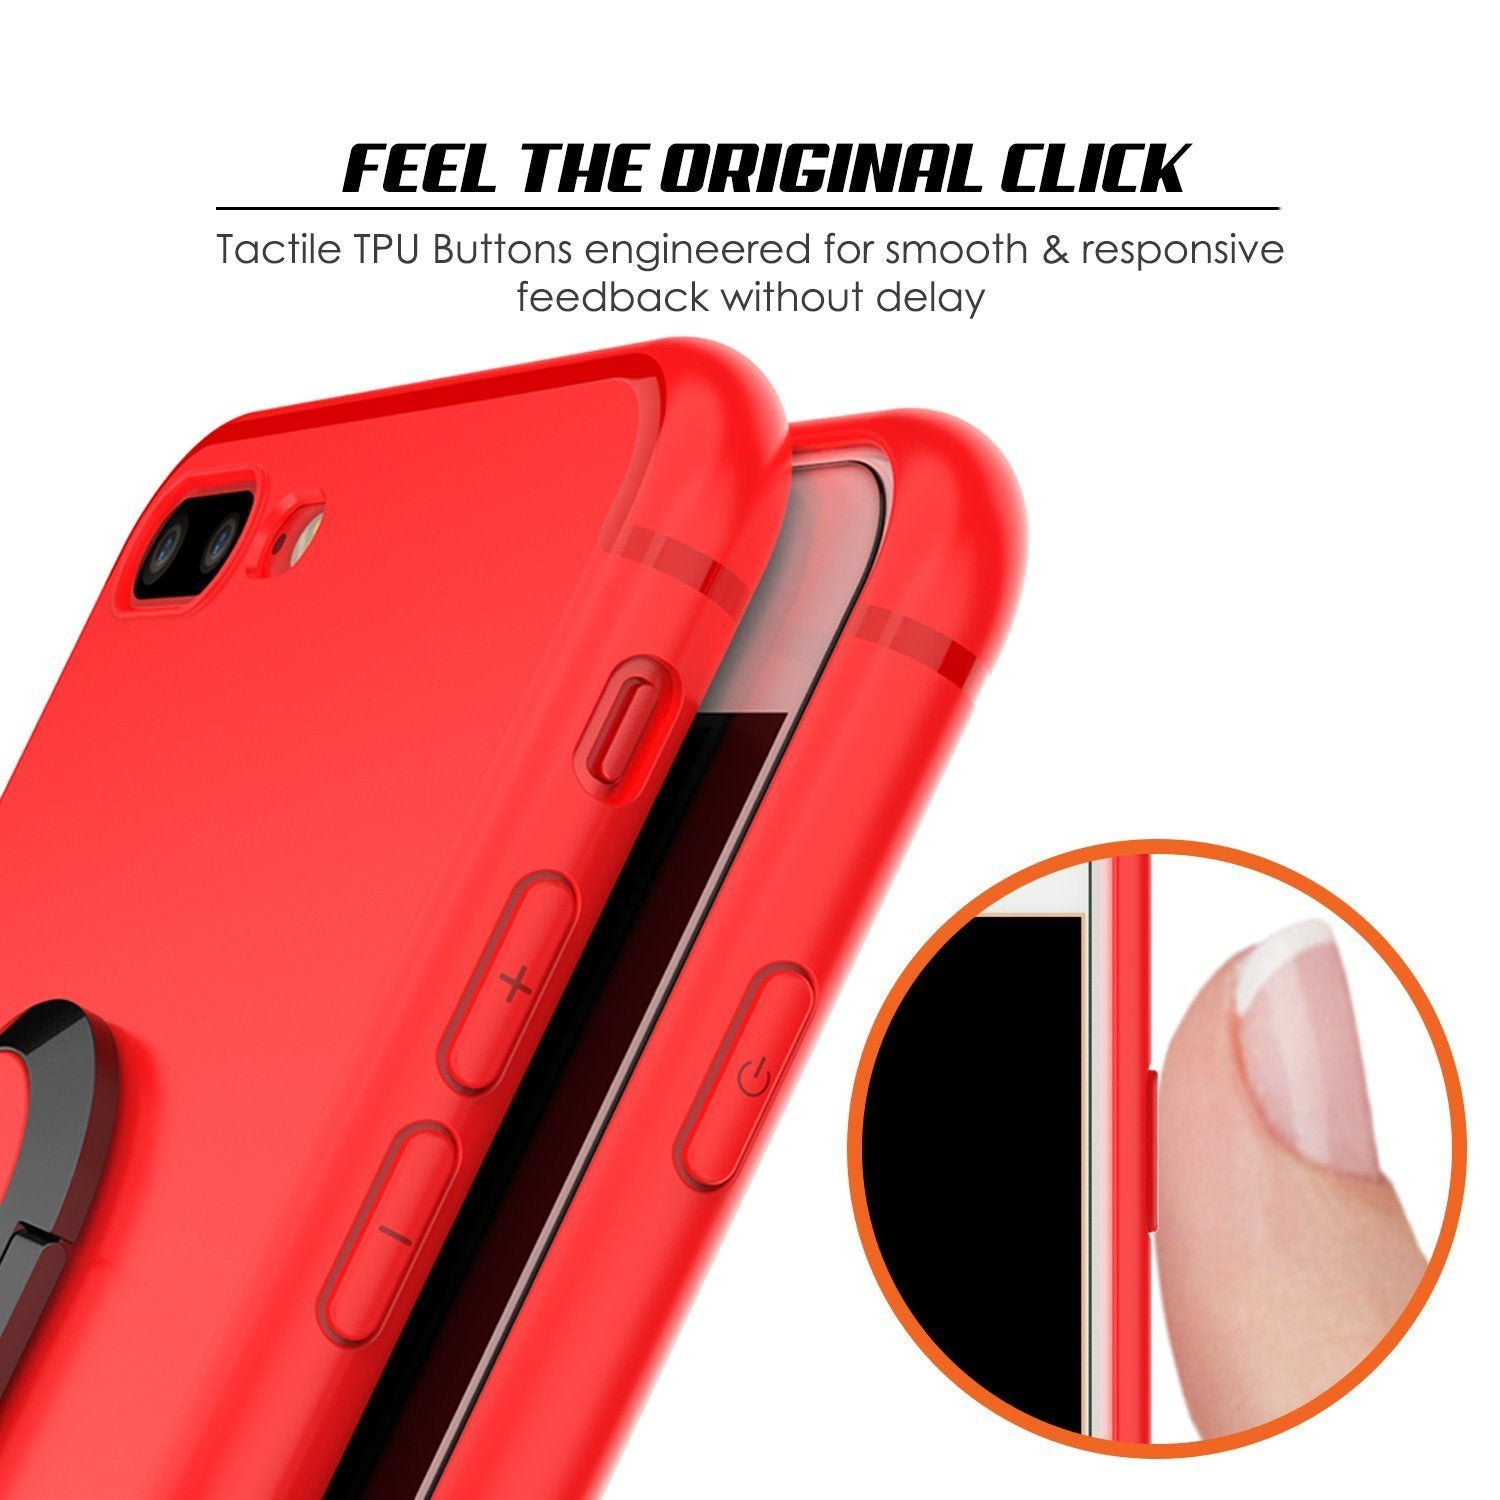 iPhone 8 Plus Case, Punkcase Magnetix Protective TPU Cover W/ Kickstand, Ring Grip Holder & Metal Plate for Magnetic Car Phone Mount PLUS Tempered Glass Screen Protector for Apple iPhone 7+/8+ [Red]